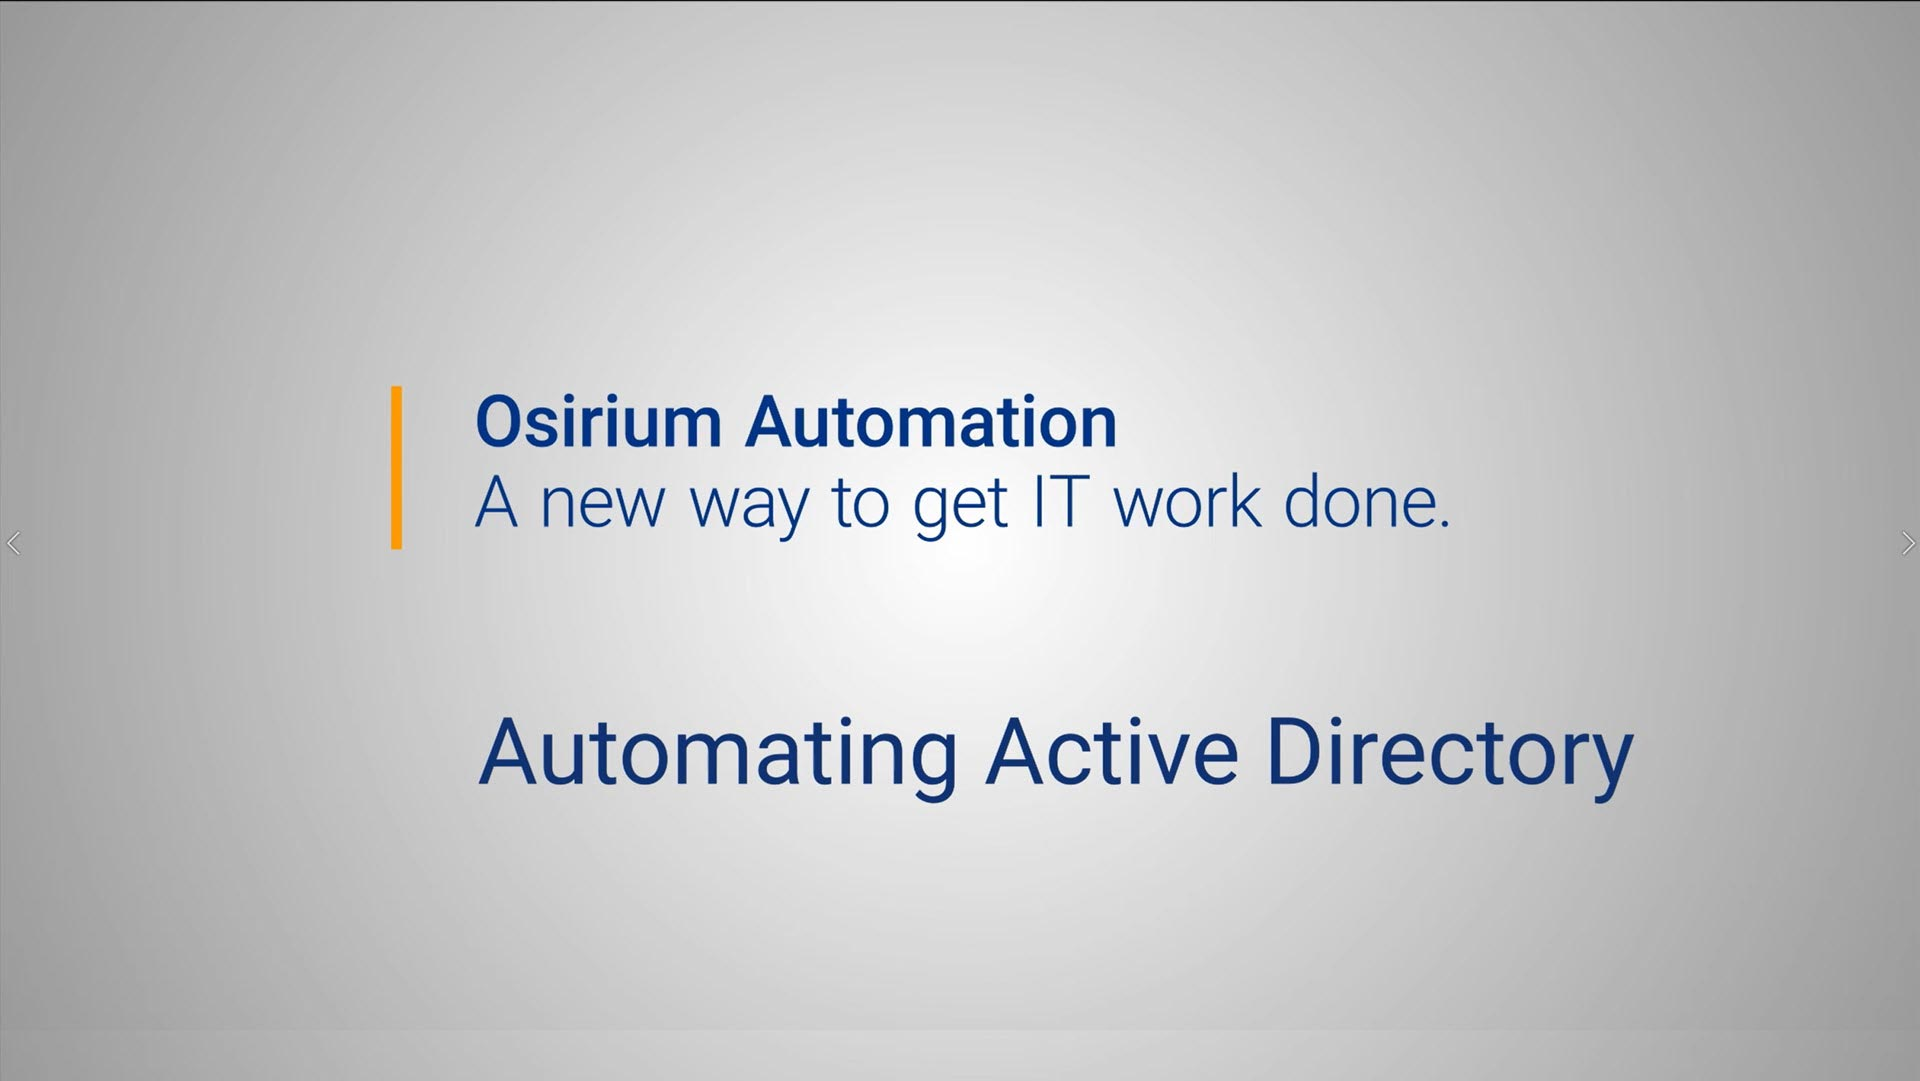 Osirium Automation for Active Directory